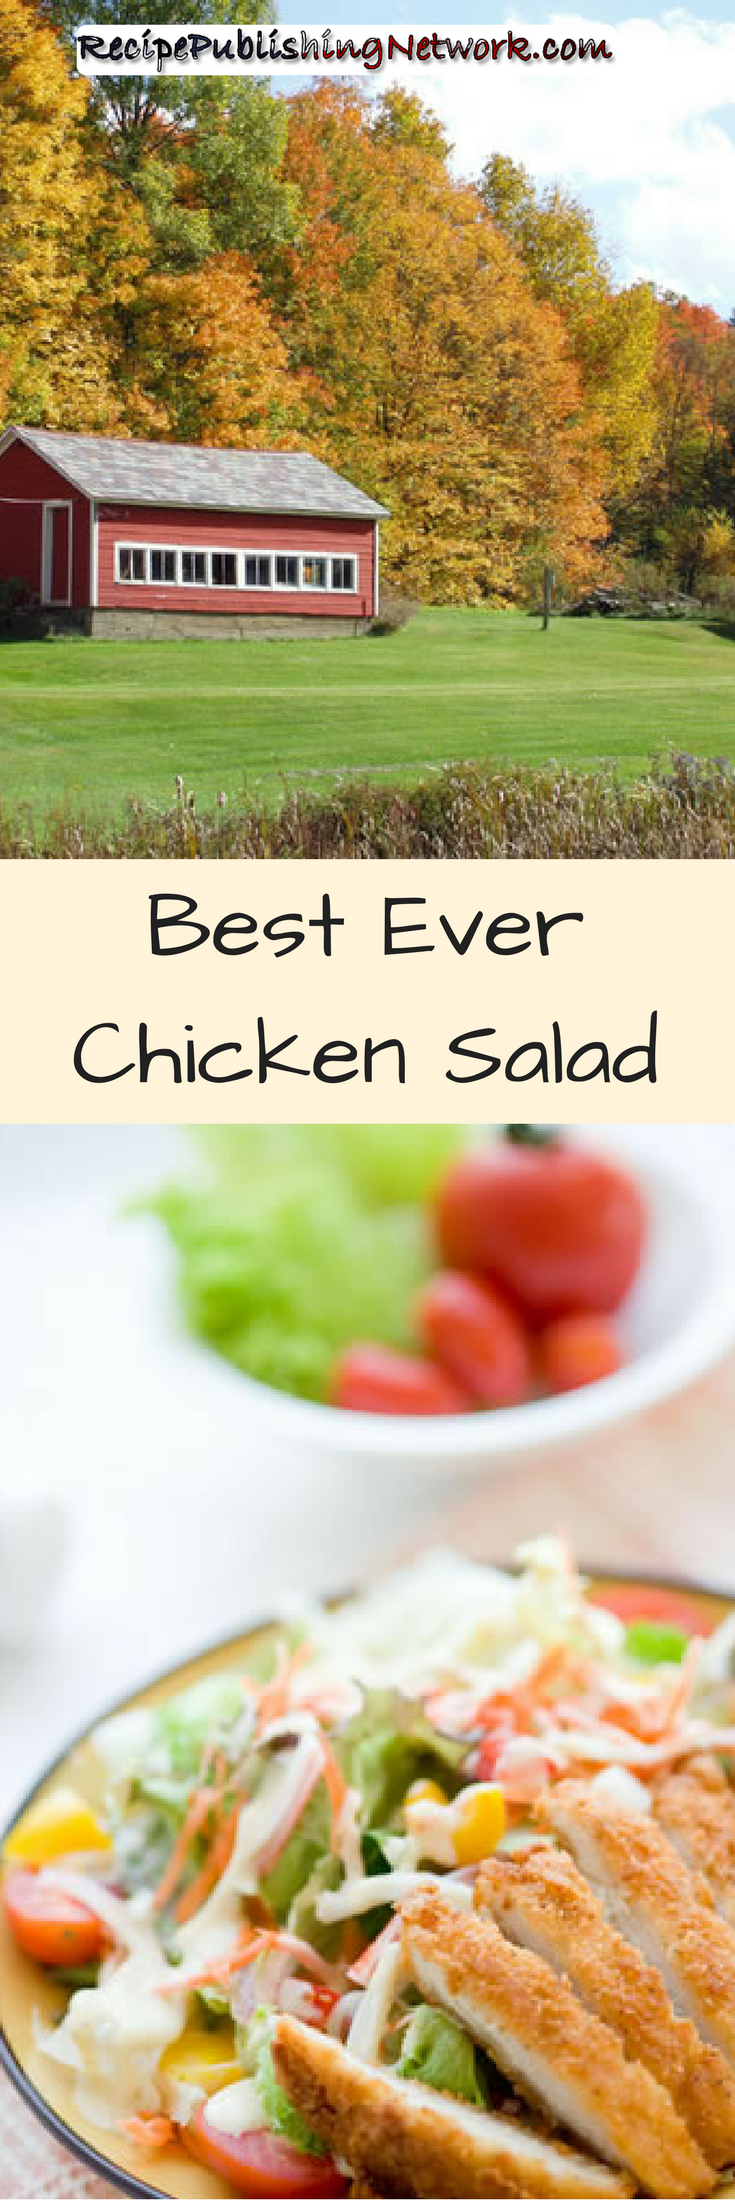 This fried chick salad is got a traditional blend of southern spices in the batter to give the chicken a bit of heat and a little bit of extra personality to it. If you prefer something, a little more subtle just leave out the cayenne.